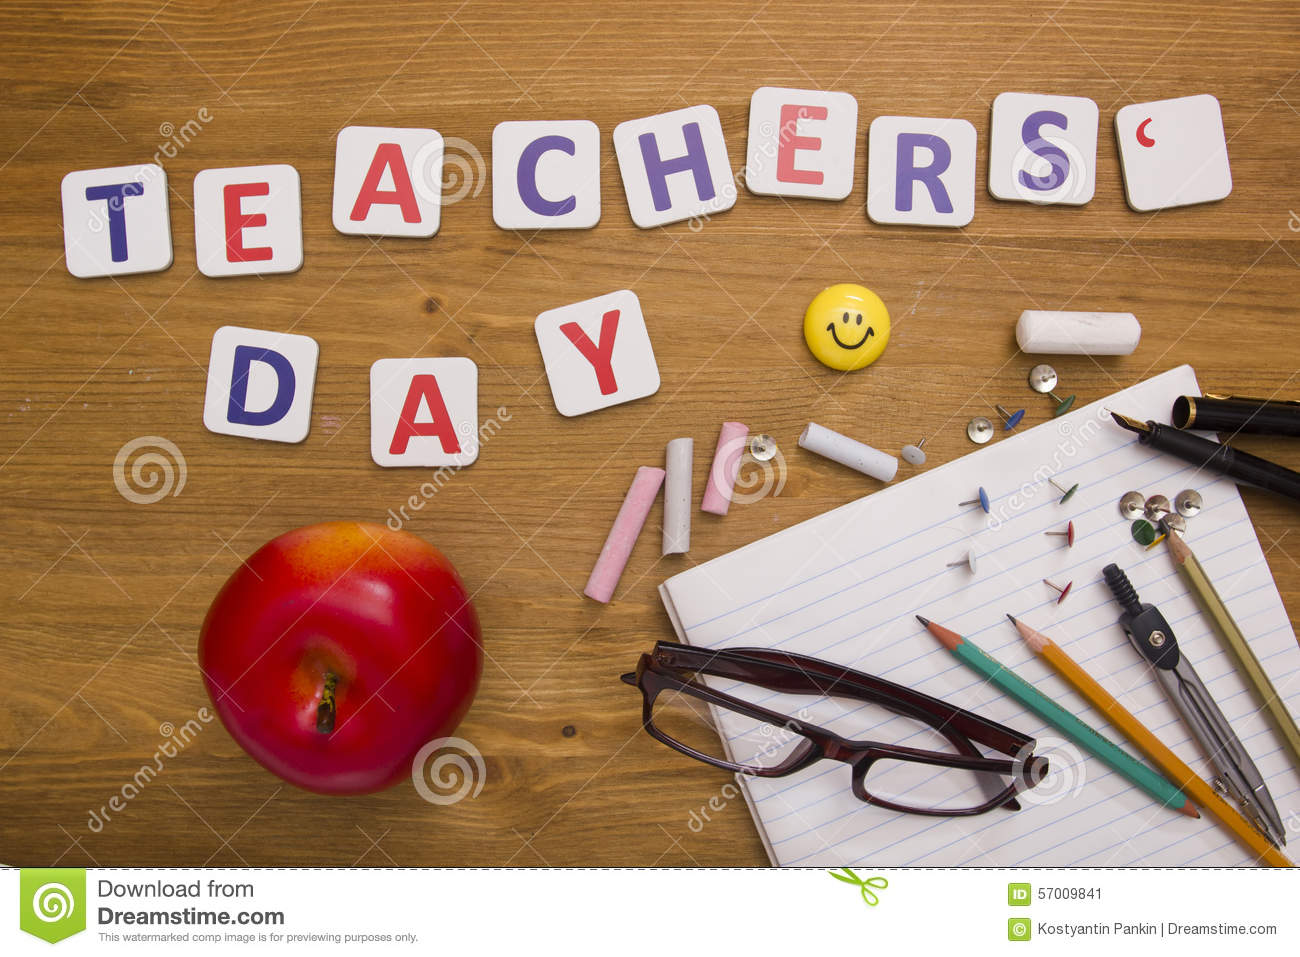 Greeting card teachers day stock image image of lifestyle greeting card teachers day kristyandbryce Image collections